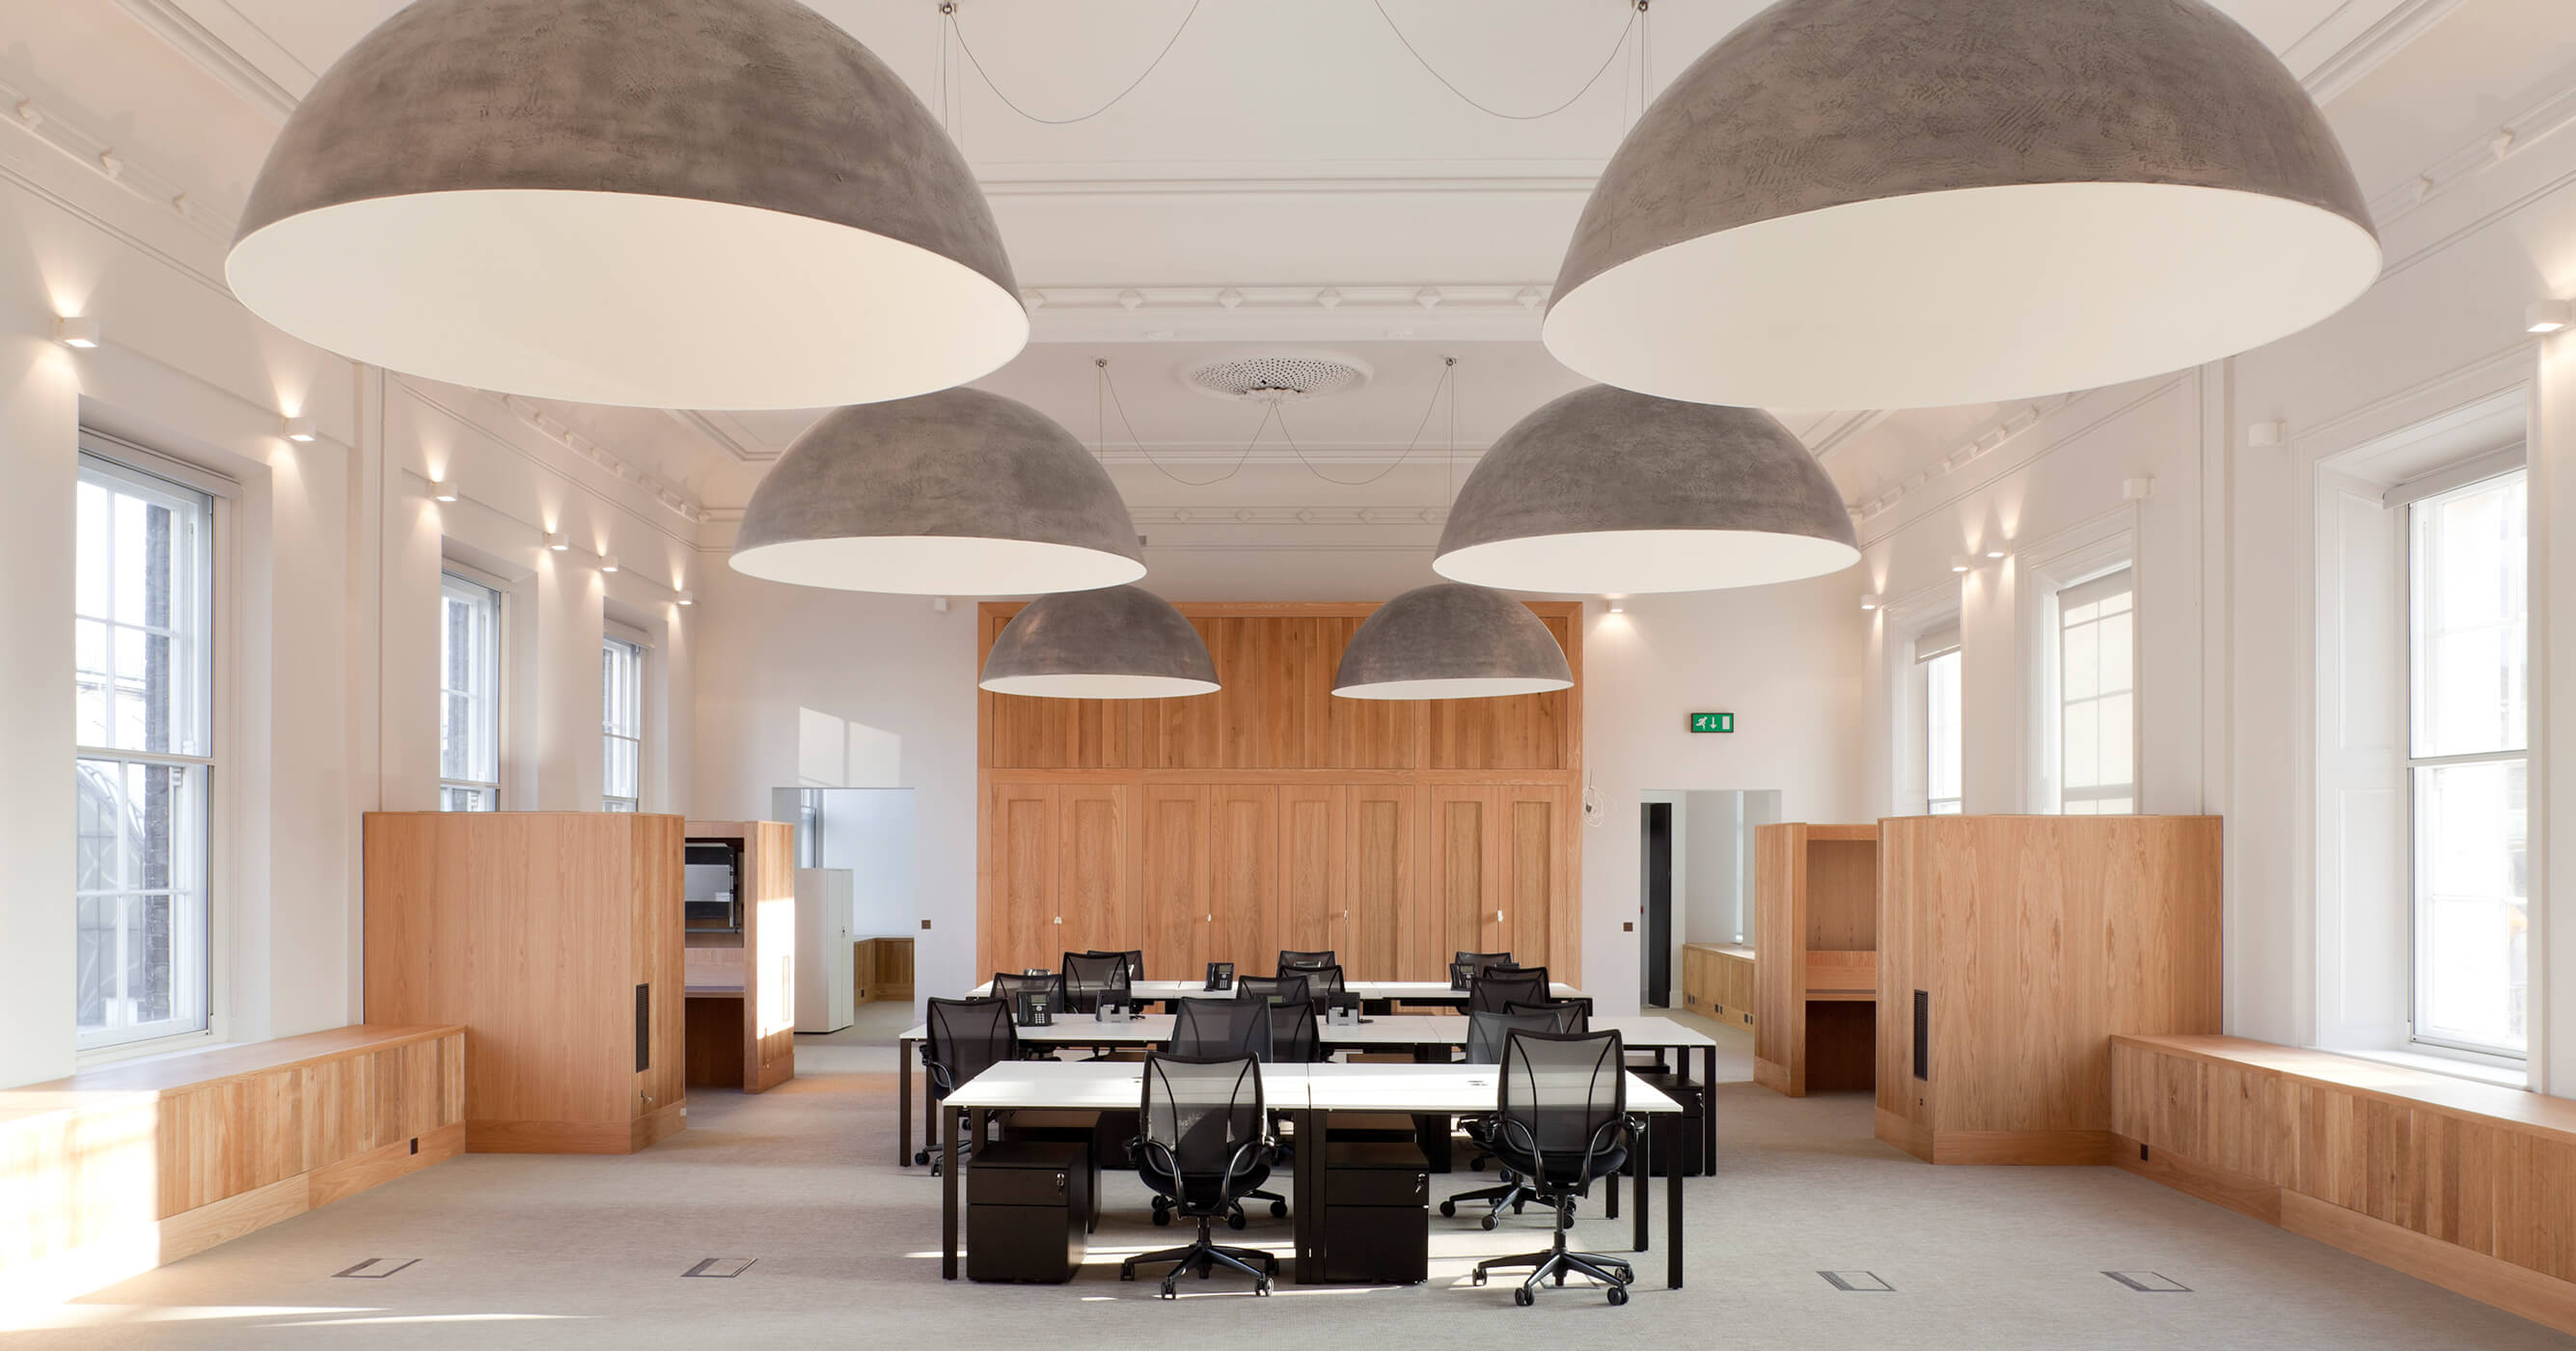 Office Space Lighting. Best Lighting For Office Space. Eastbourne Terrace,  Paddington, London